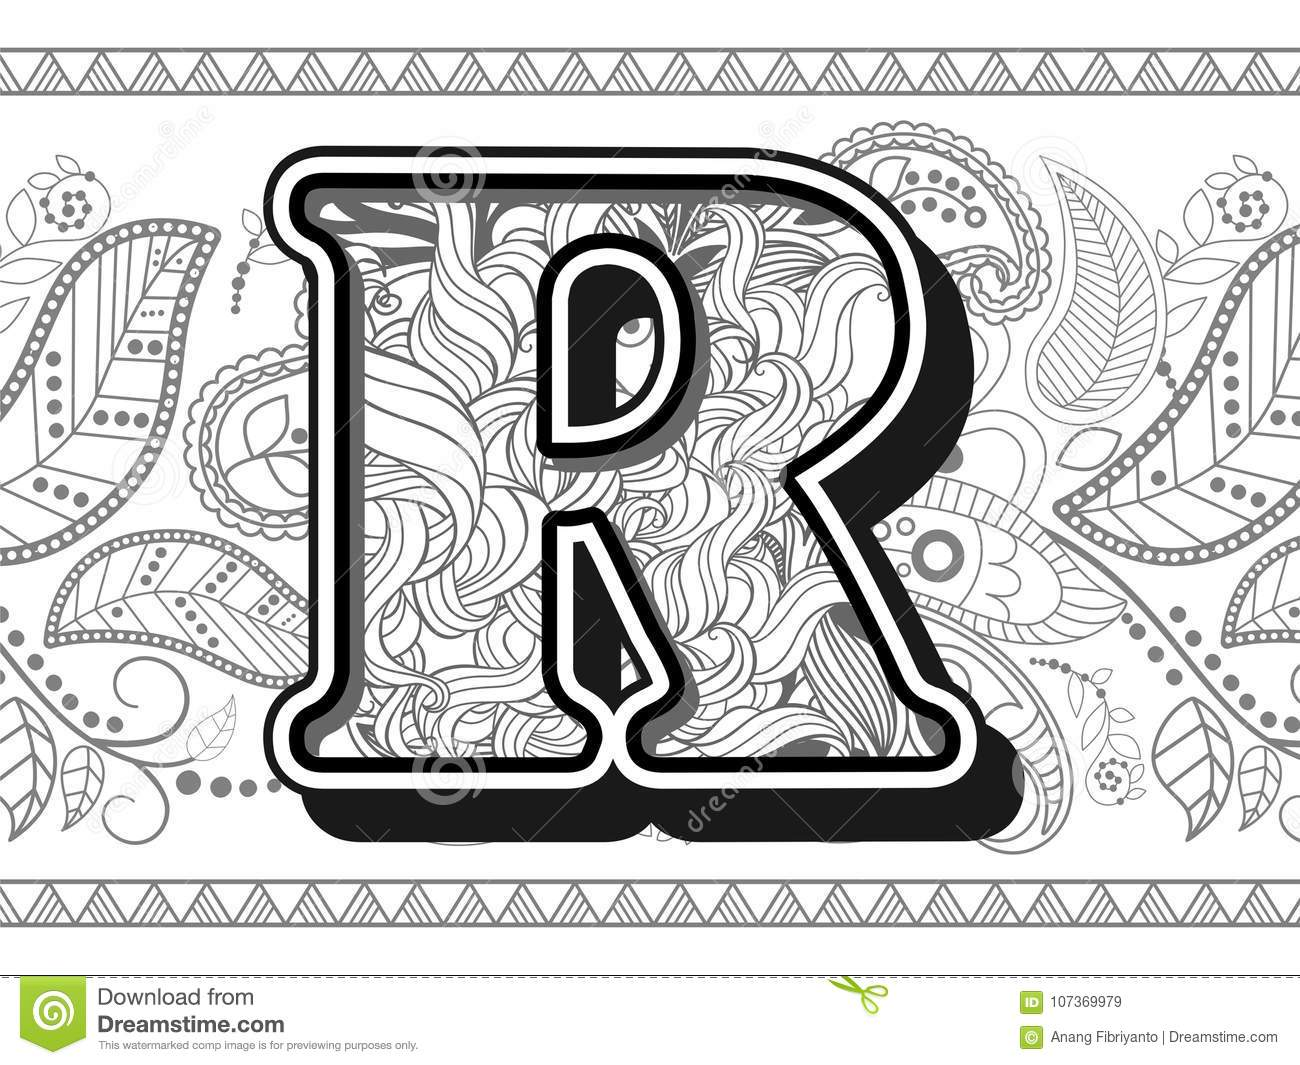 Royalty Free Vector Zentangle Stylized Alphabet Letter R Handrawn Alphabetical Doodles In Download Preview